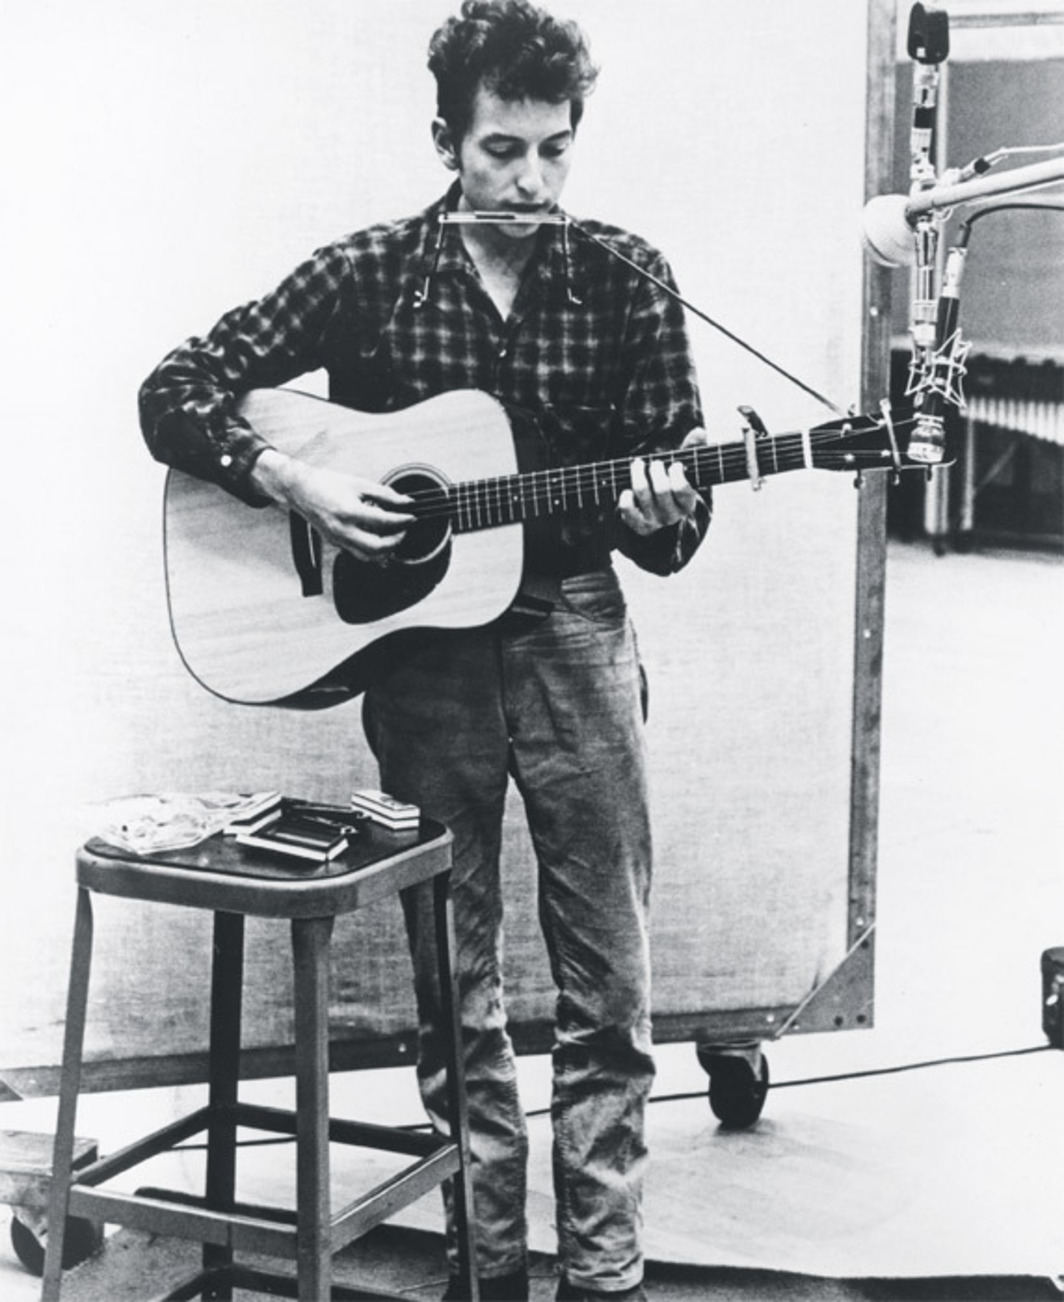 Bob Dylan in the studio, ca. 1962. Photo: Michael Ochs Archives/Getty Images.